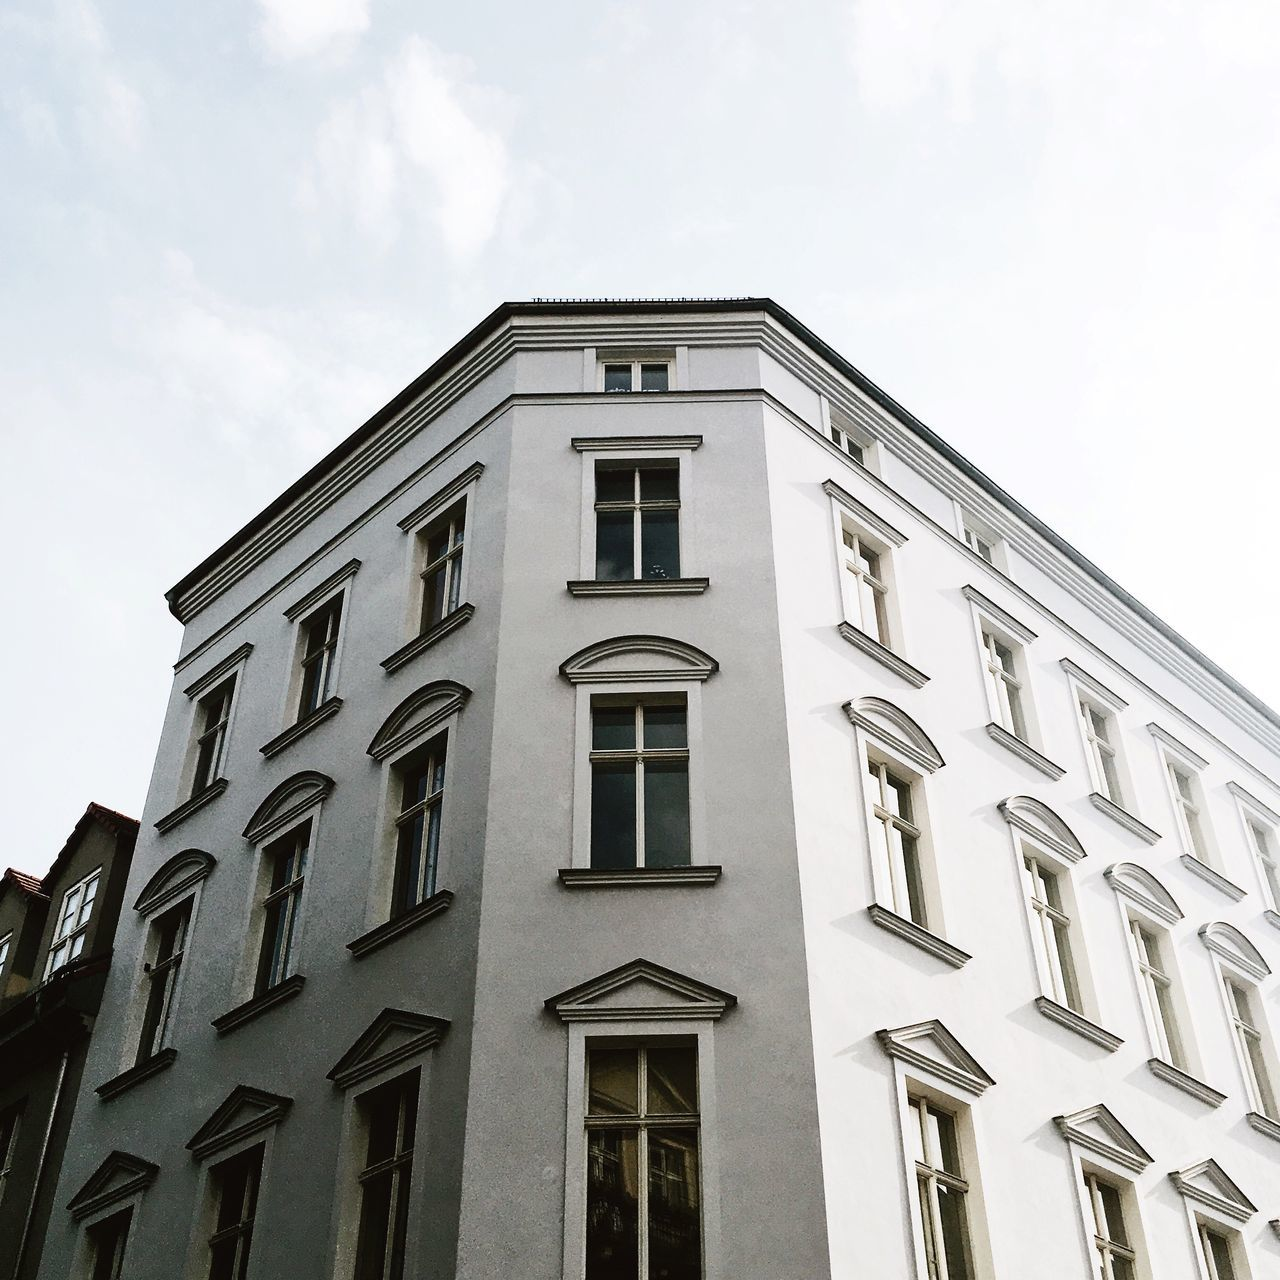 Architecture Berlin City Building Building Exterior Built Structure Day Living In The City Low Angle View Old Buildings Sunny Day White Color Windows